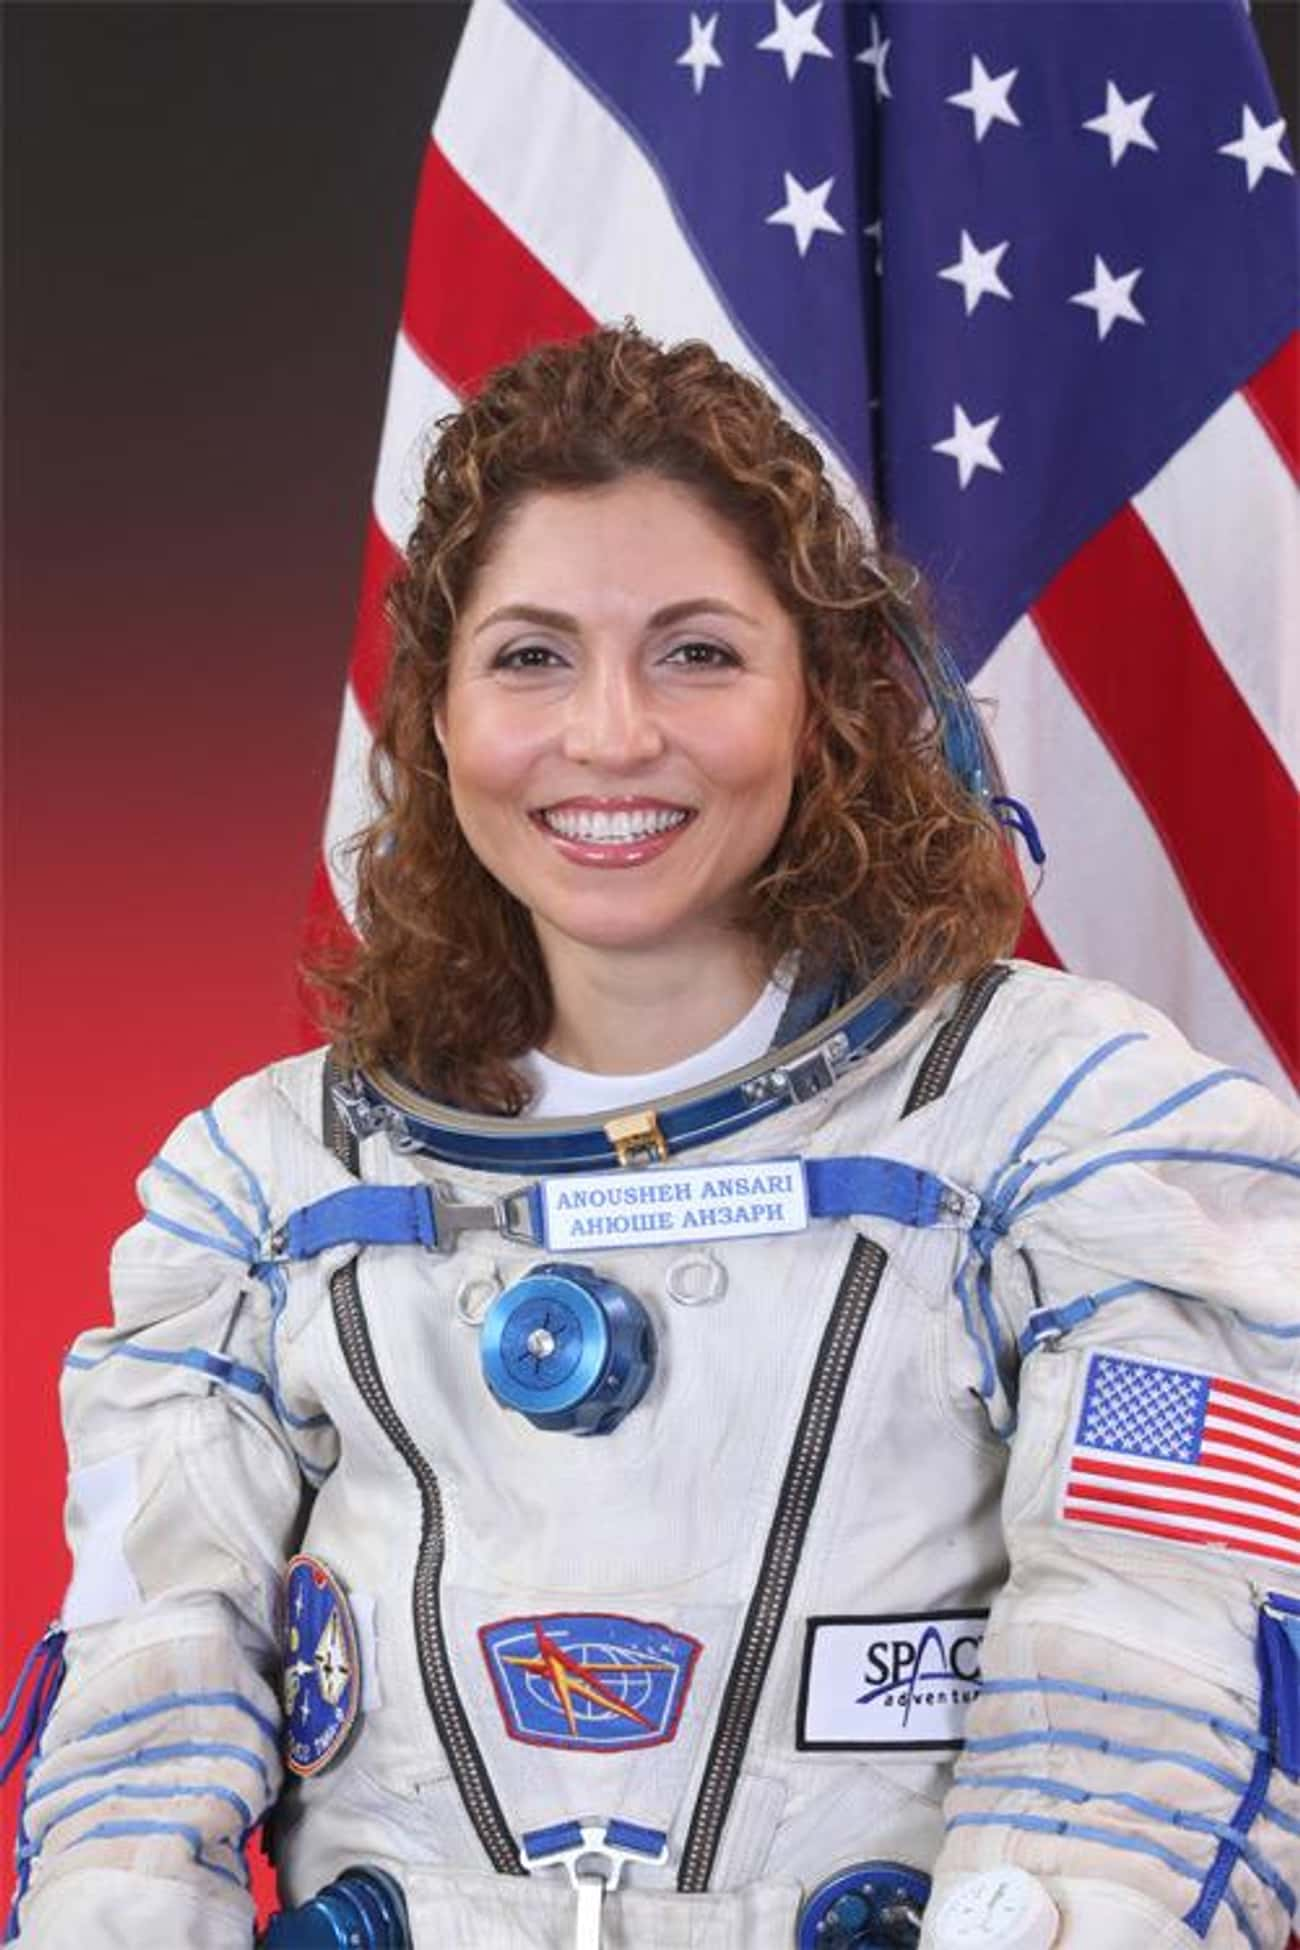 Anousheh Ansari is listed (or ranked) 4 on the list Famous People who Majored in Electrical Engineering